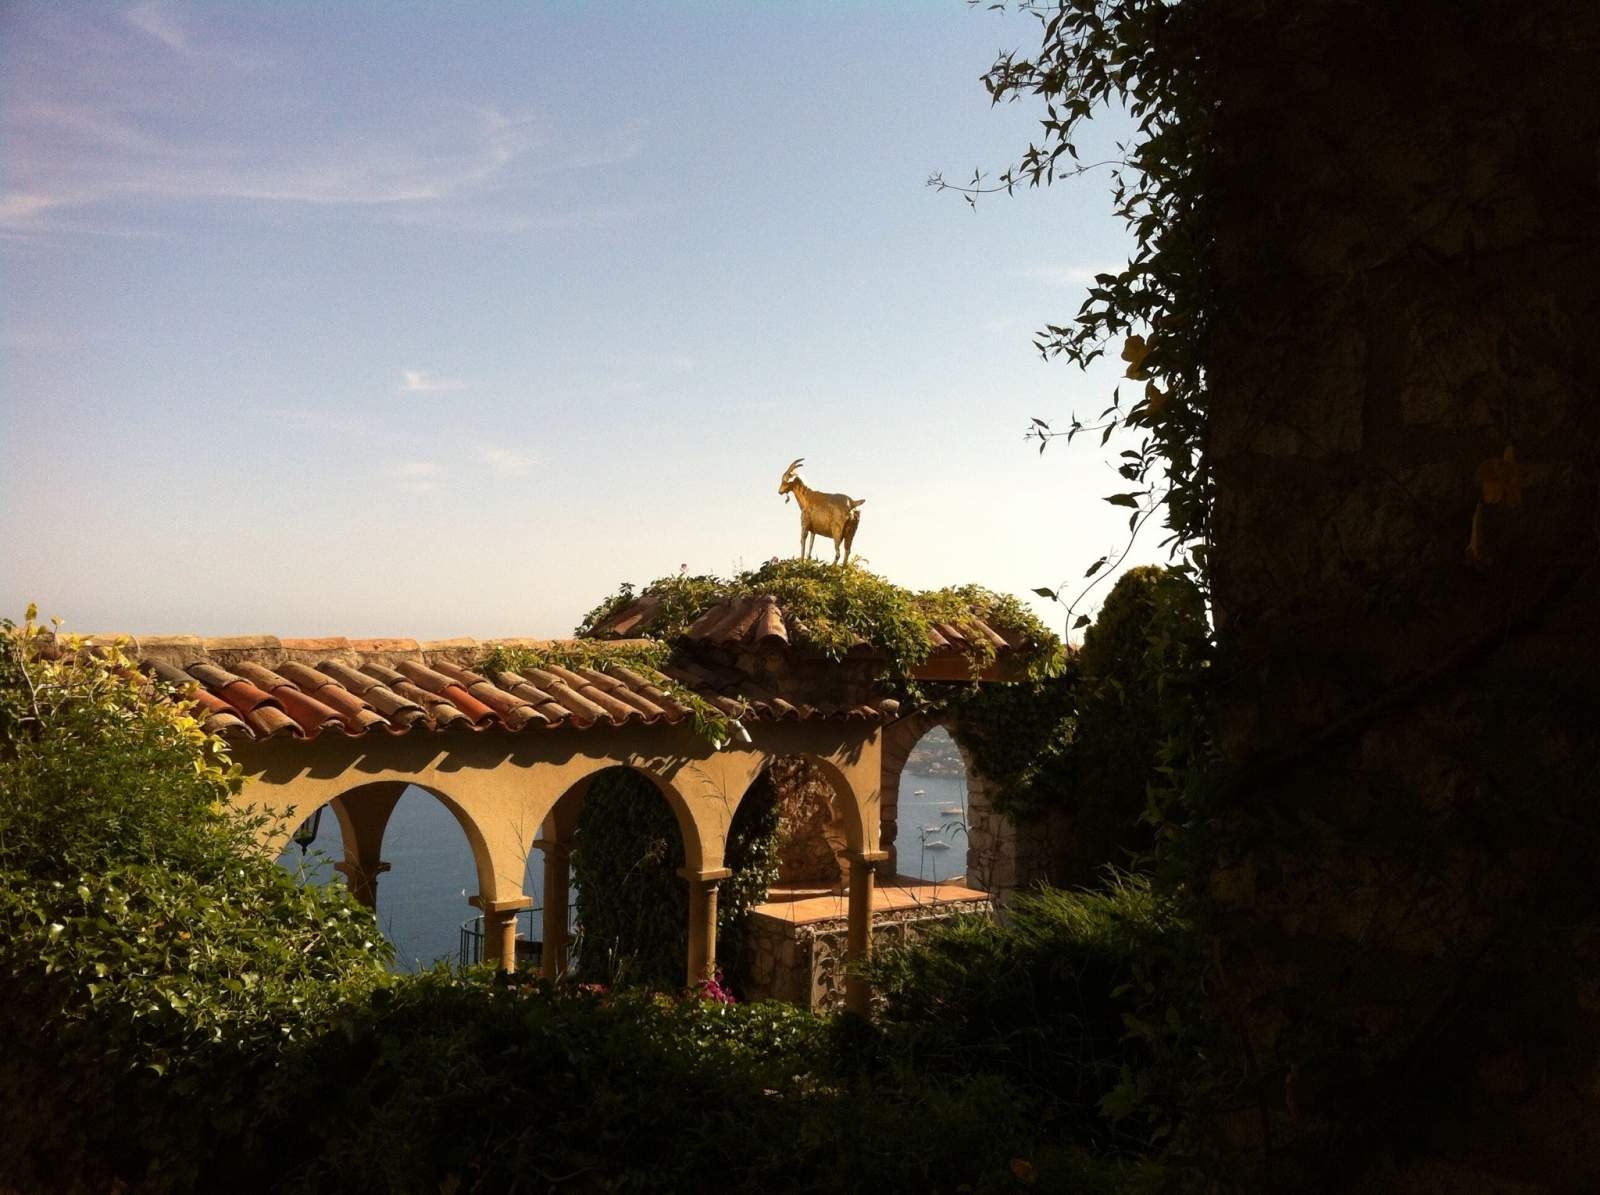 golden goat on the rooftop at eze, medieval village of art and gastronomy in France